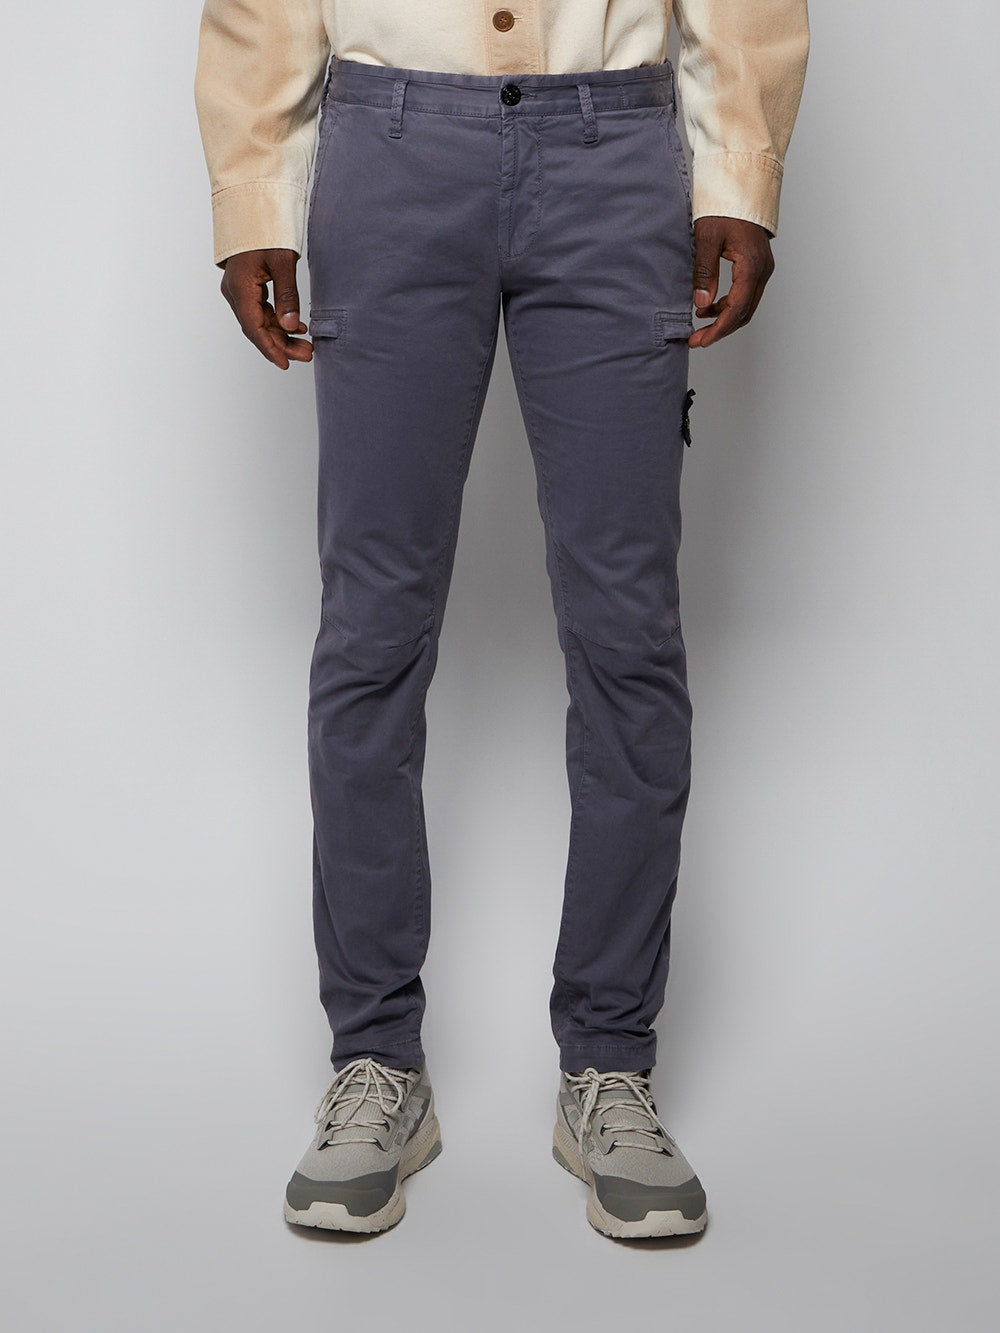 Blue and Grey Chino Trousers